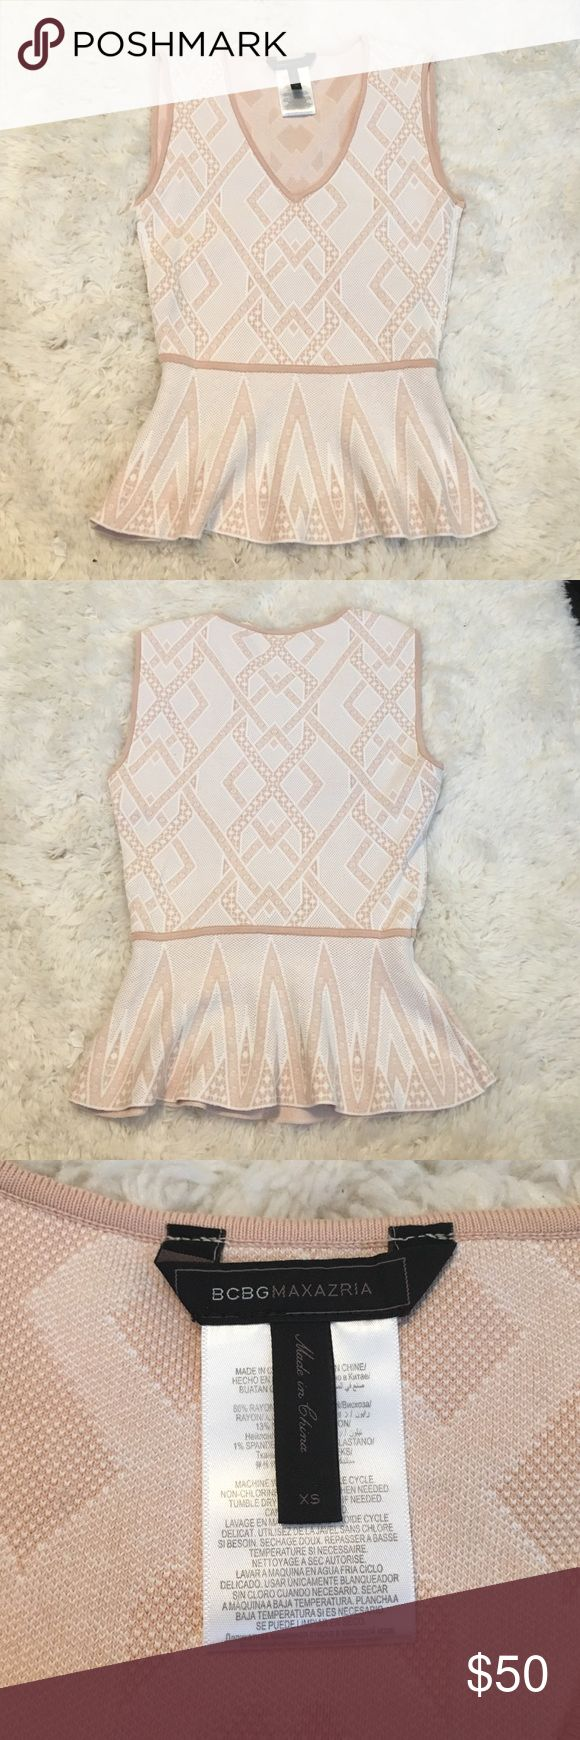 BCBG Top Extremely flattering bandage-like material, never worn! BCBGMaxAzria Tops Blouses